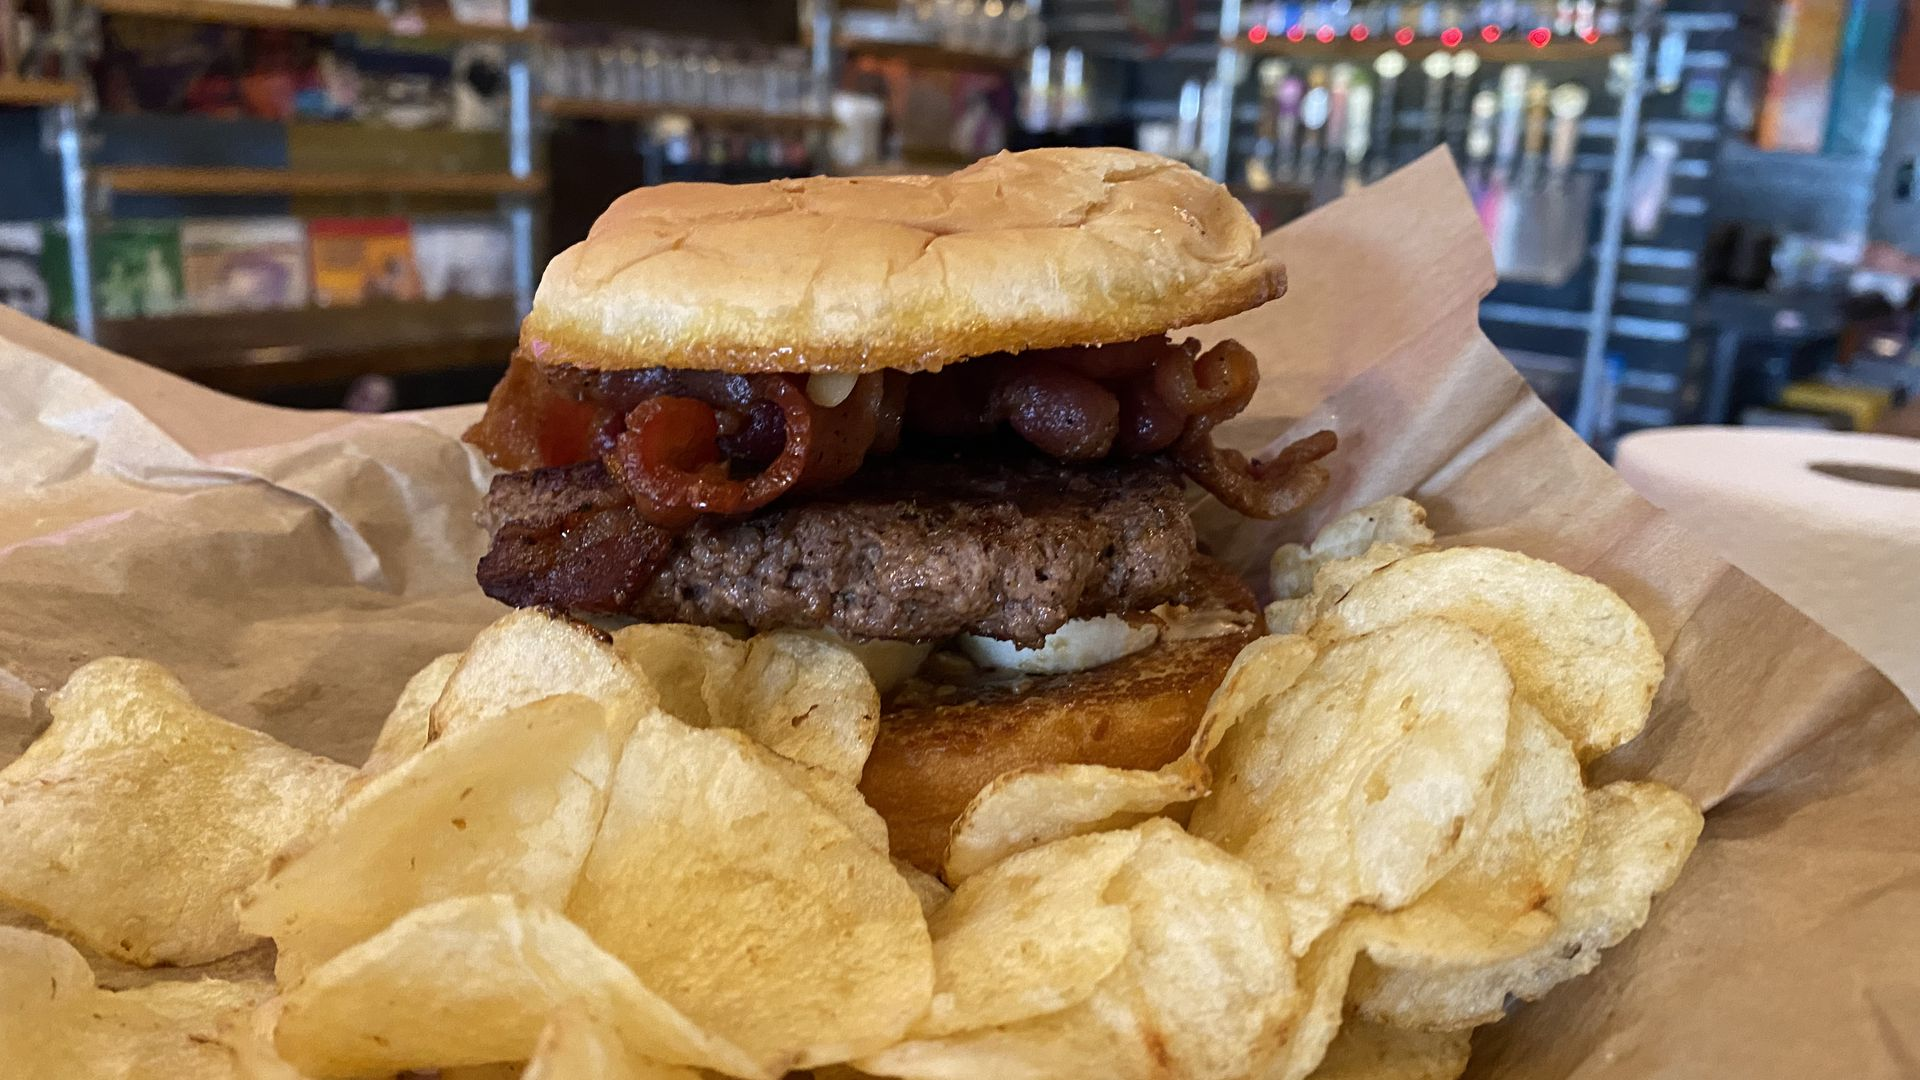 A photo of a burger with a side of potato chips.